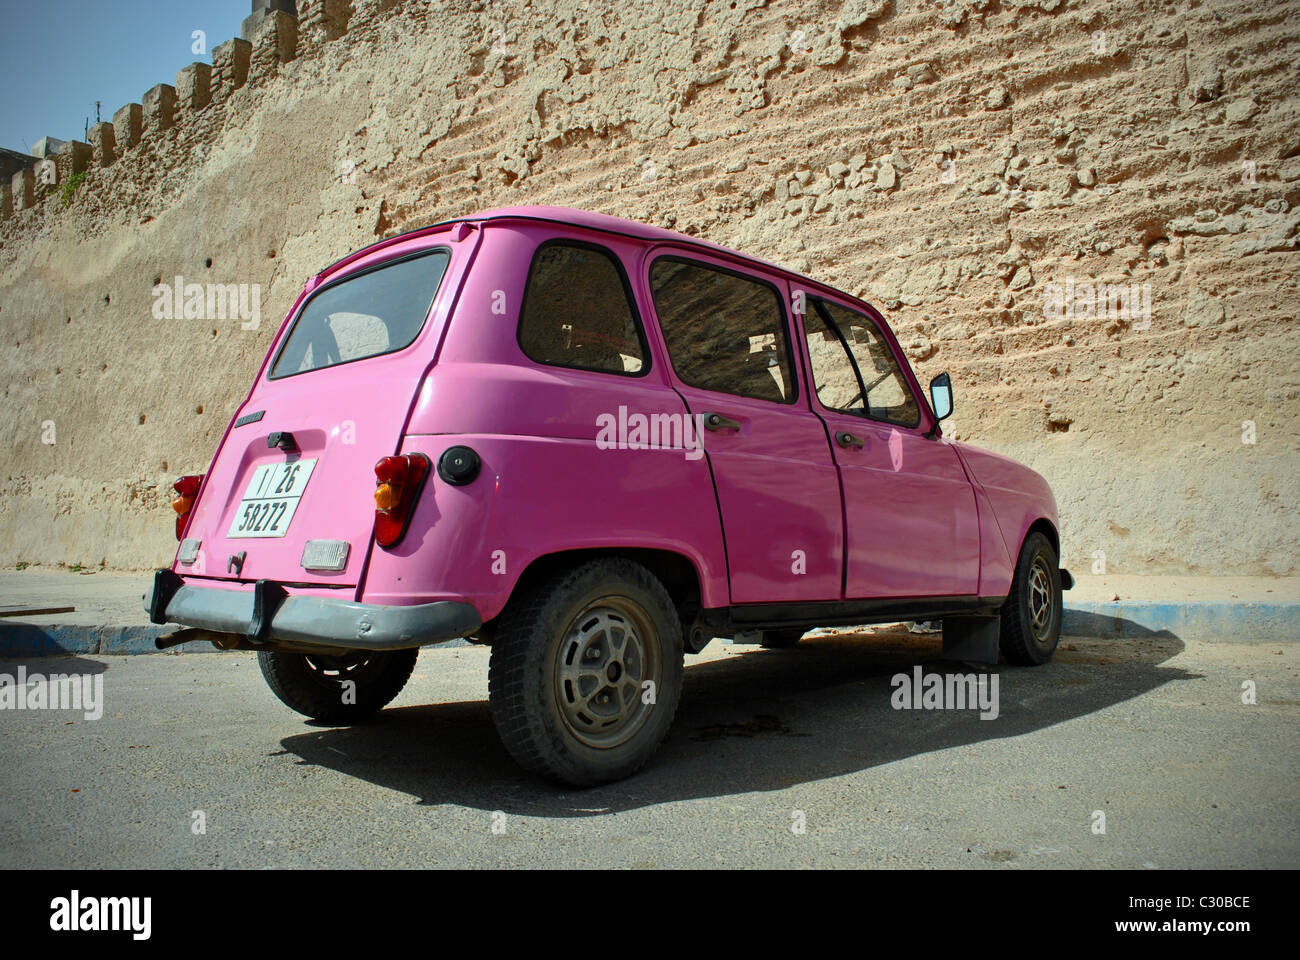 Pink Renault 4 parked outside the medina in Essaouira, Morocco - Stock Image